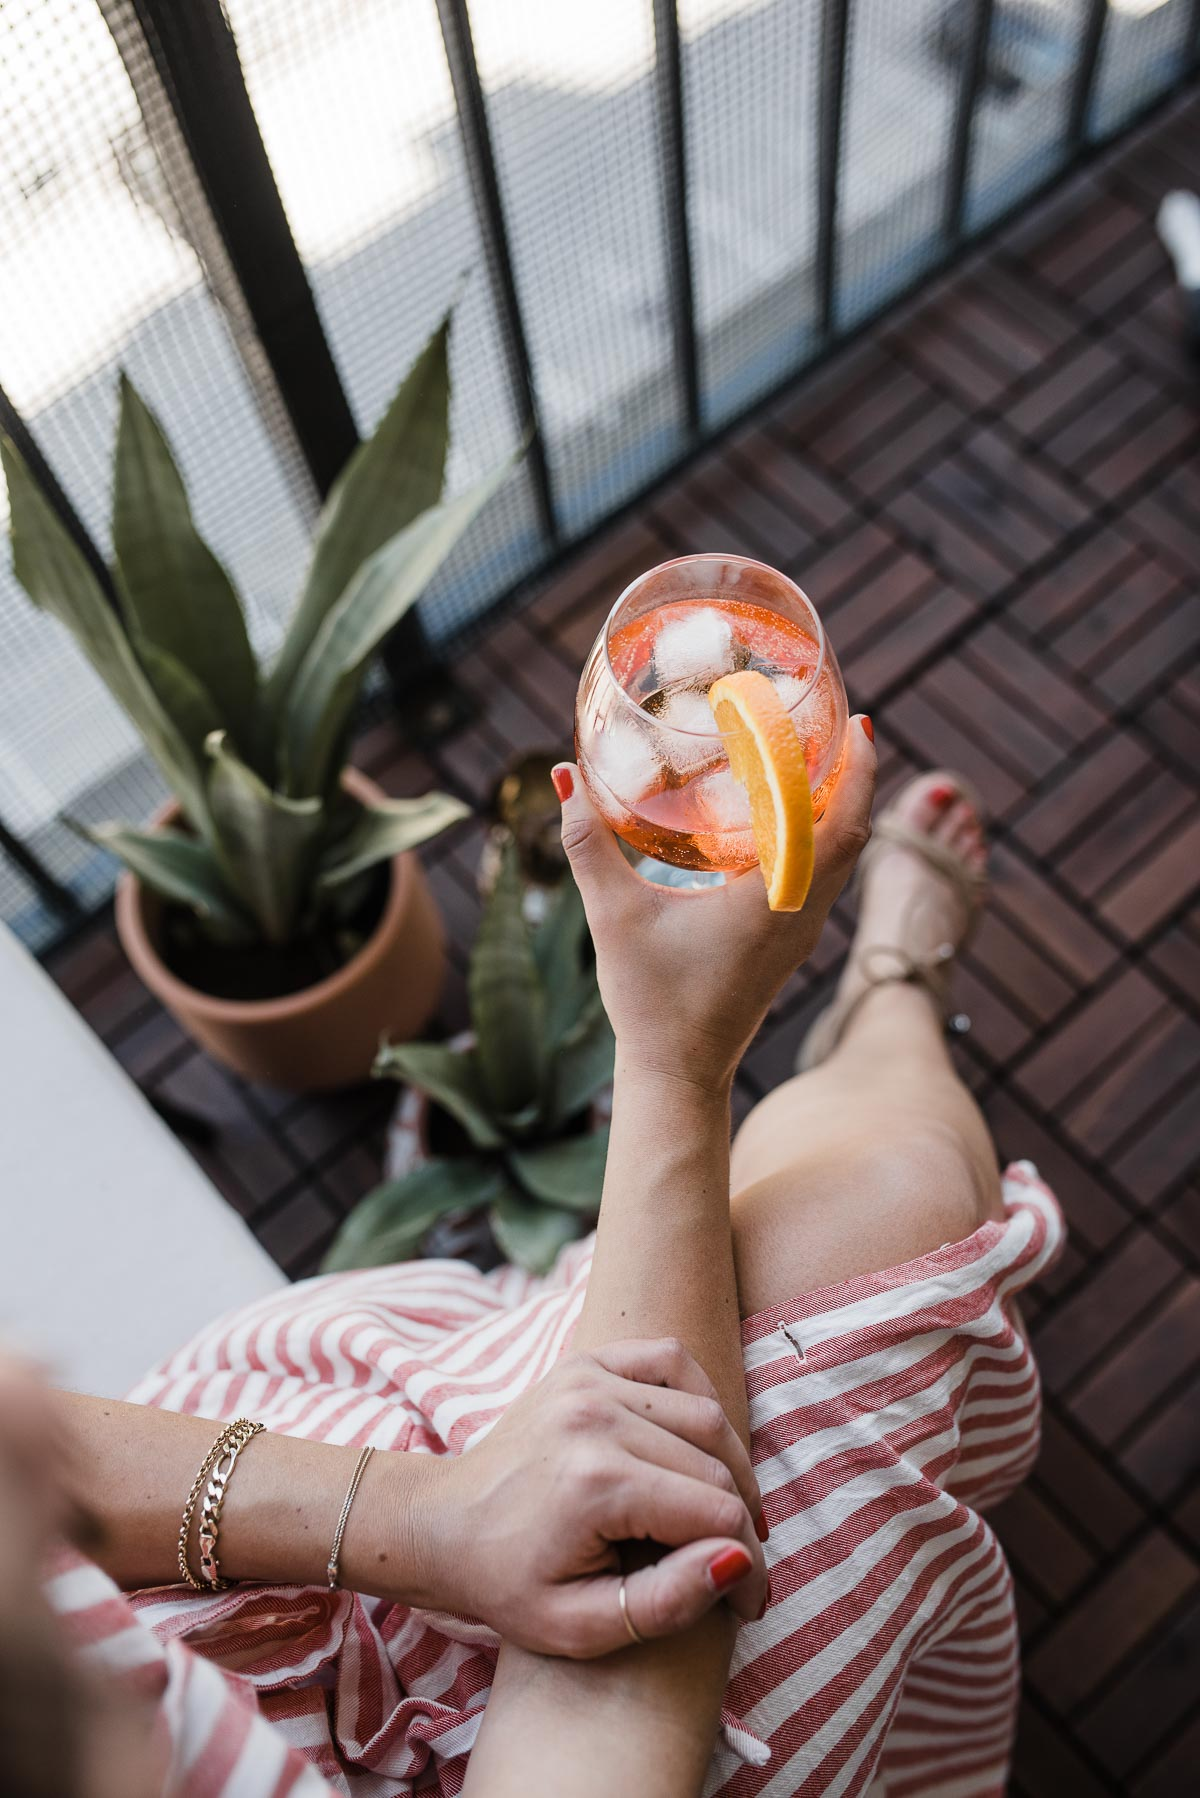 A Classic Summertime Cocktail, The Aperol Spritz